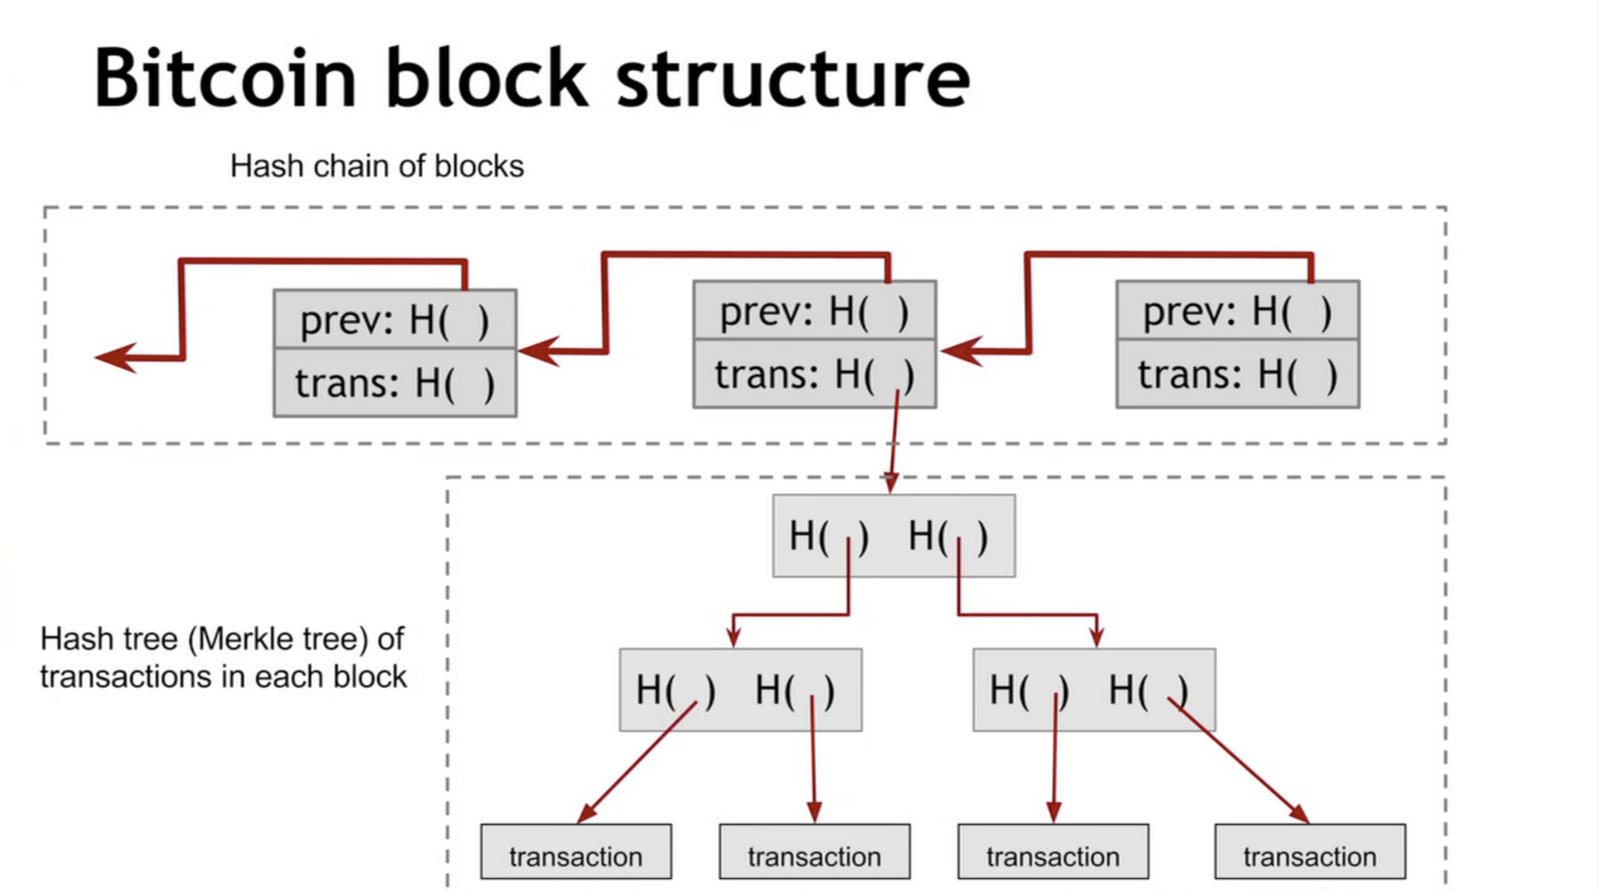 Merkle trees introduction to blockchain suraj kumar medium the above diagram shows the internal structure of bitcoin a cryptocurrency which uses blockchain to store transactional data this chain of transaction ccuart Choice Image